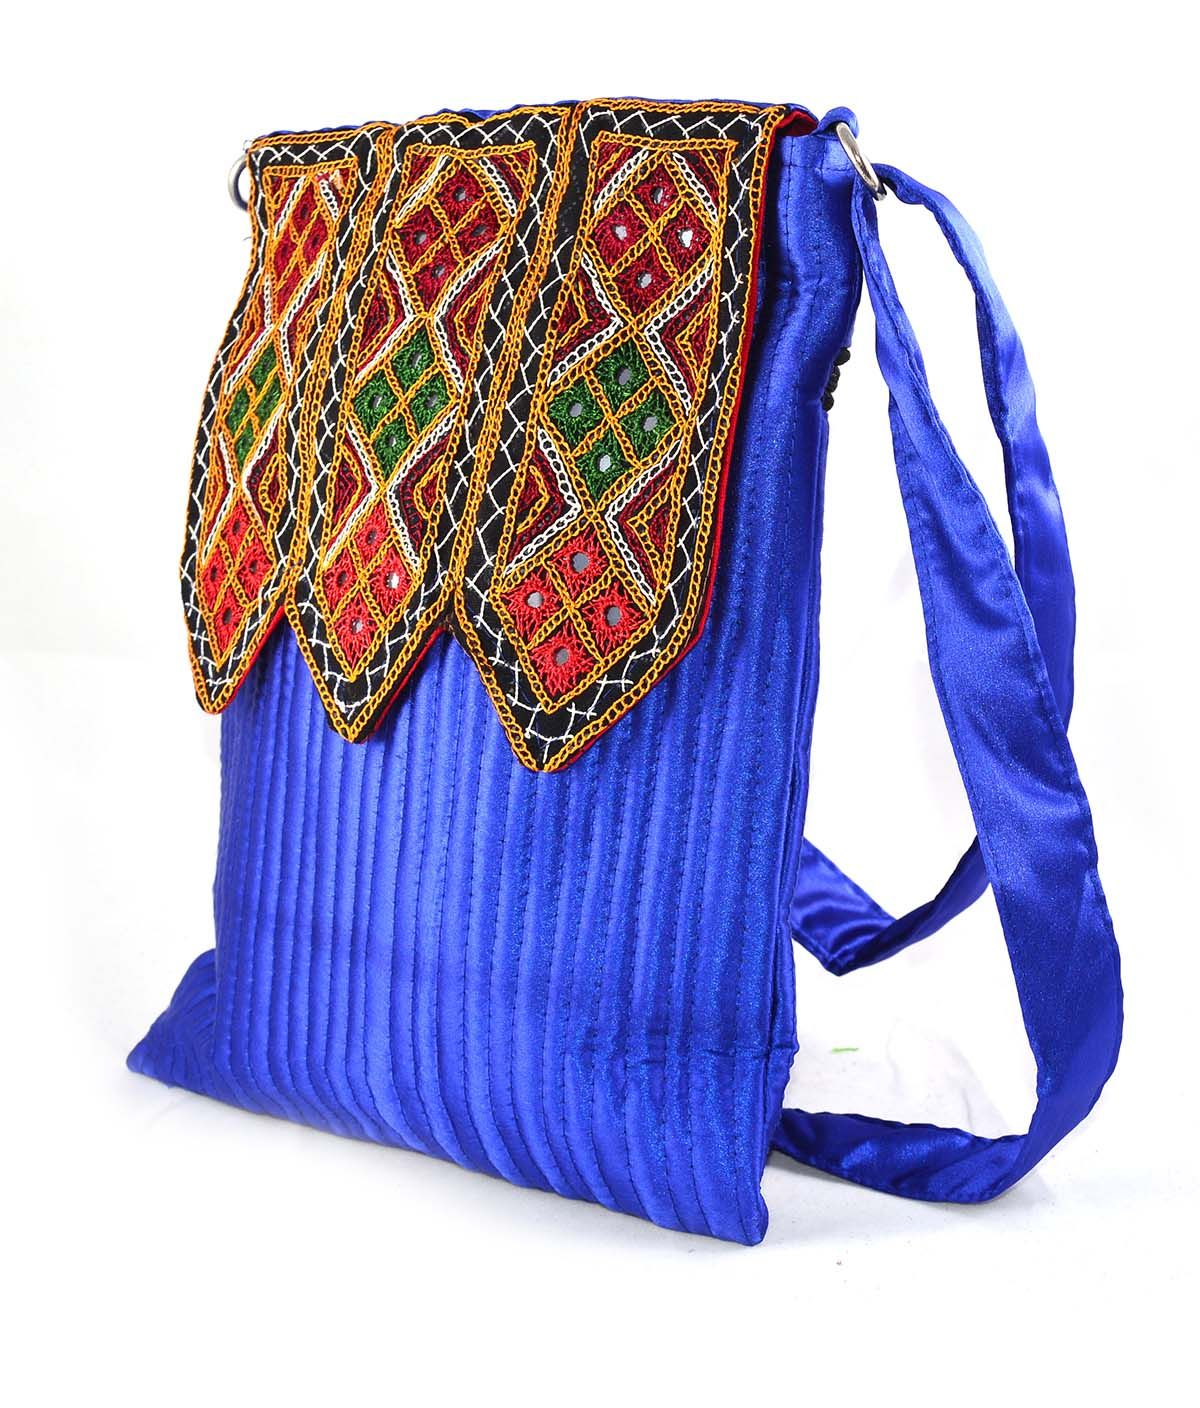 0a679872b5f3 Silk Pandada Flap Bag made up of Satin material with mirror and Embroidery  work. This handmade bags main pocket include 1 chain pockets back side and  ...